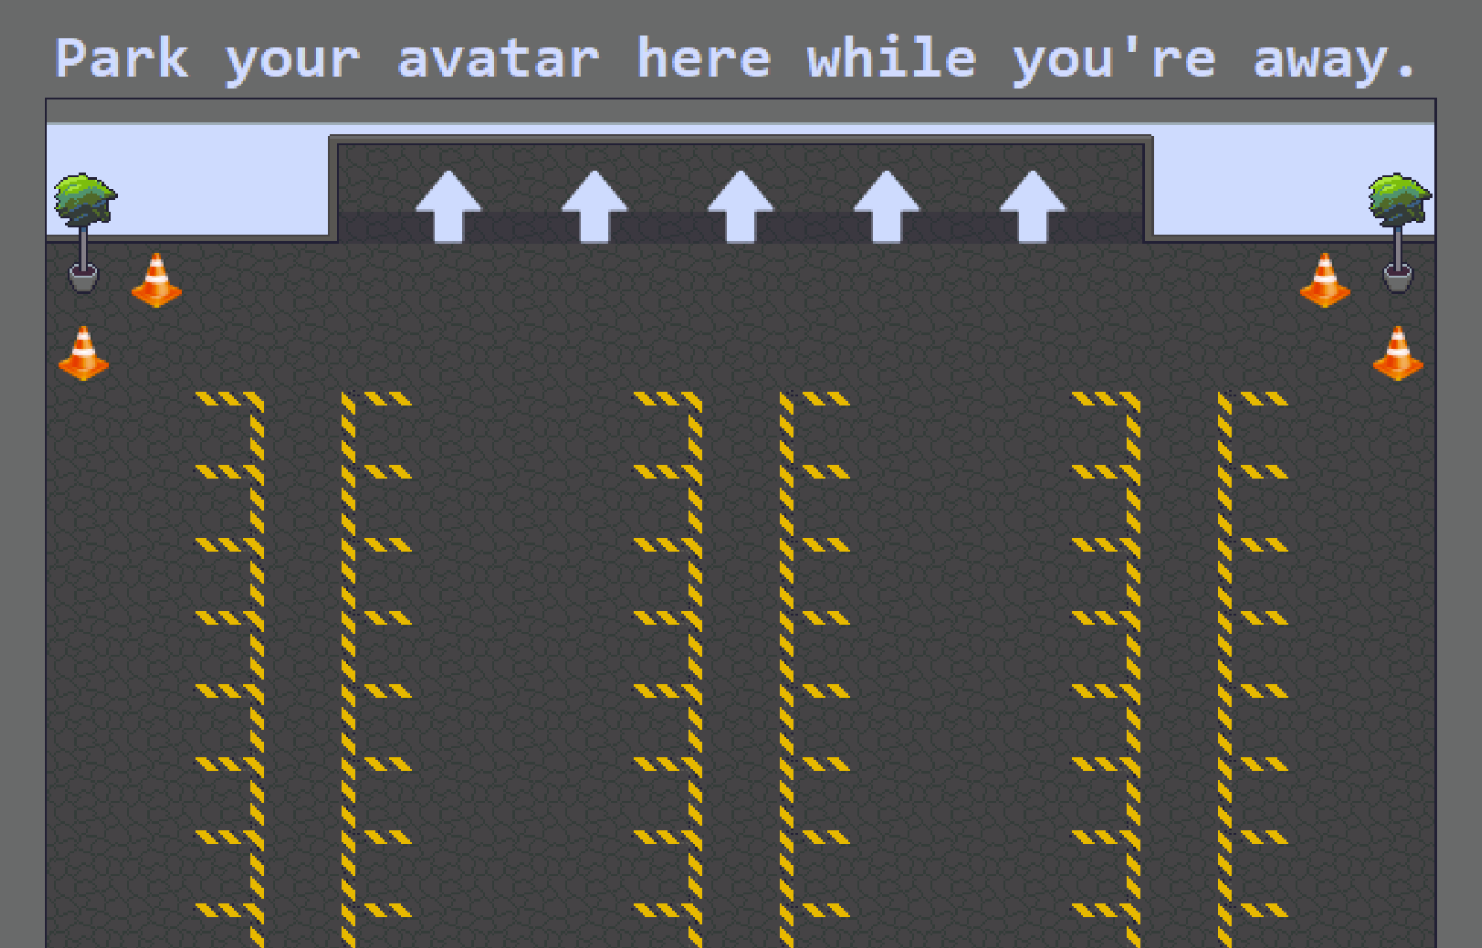 """avatar parking area in the LingComm21 Gather space: a label reading """"Park your avatar here while you're away"""" above the door, with outlines for avatar-sized parking spaces on the floor and decorative traffic cones in the corners of the room"""